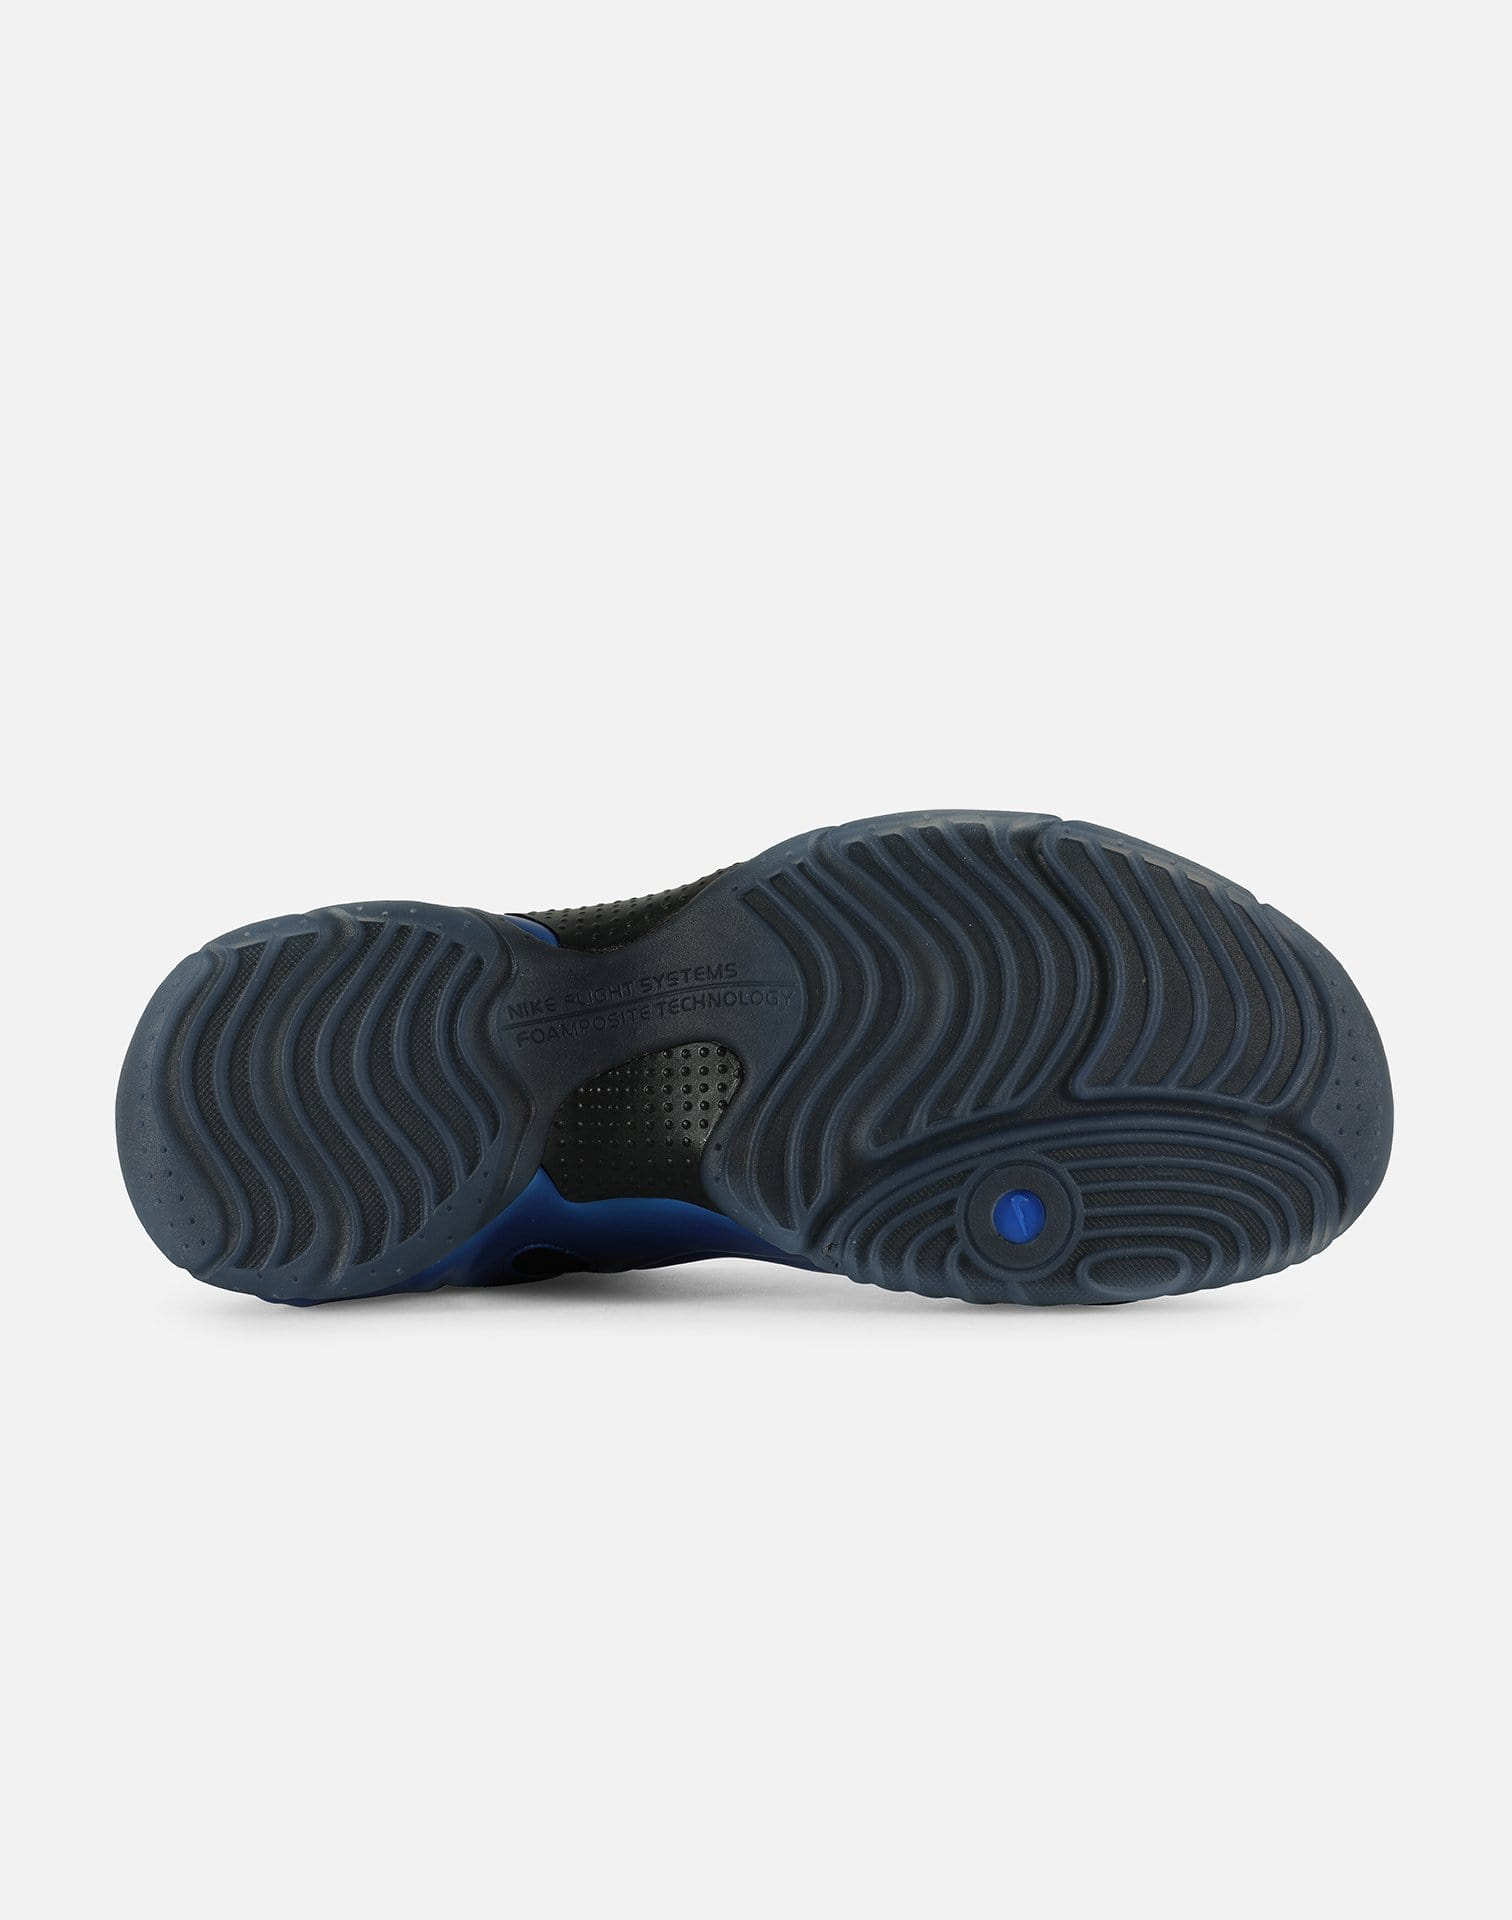 Nike Men's Air Flightposite QS